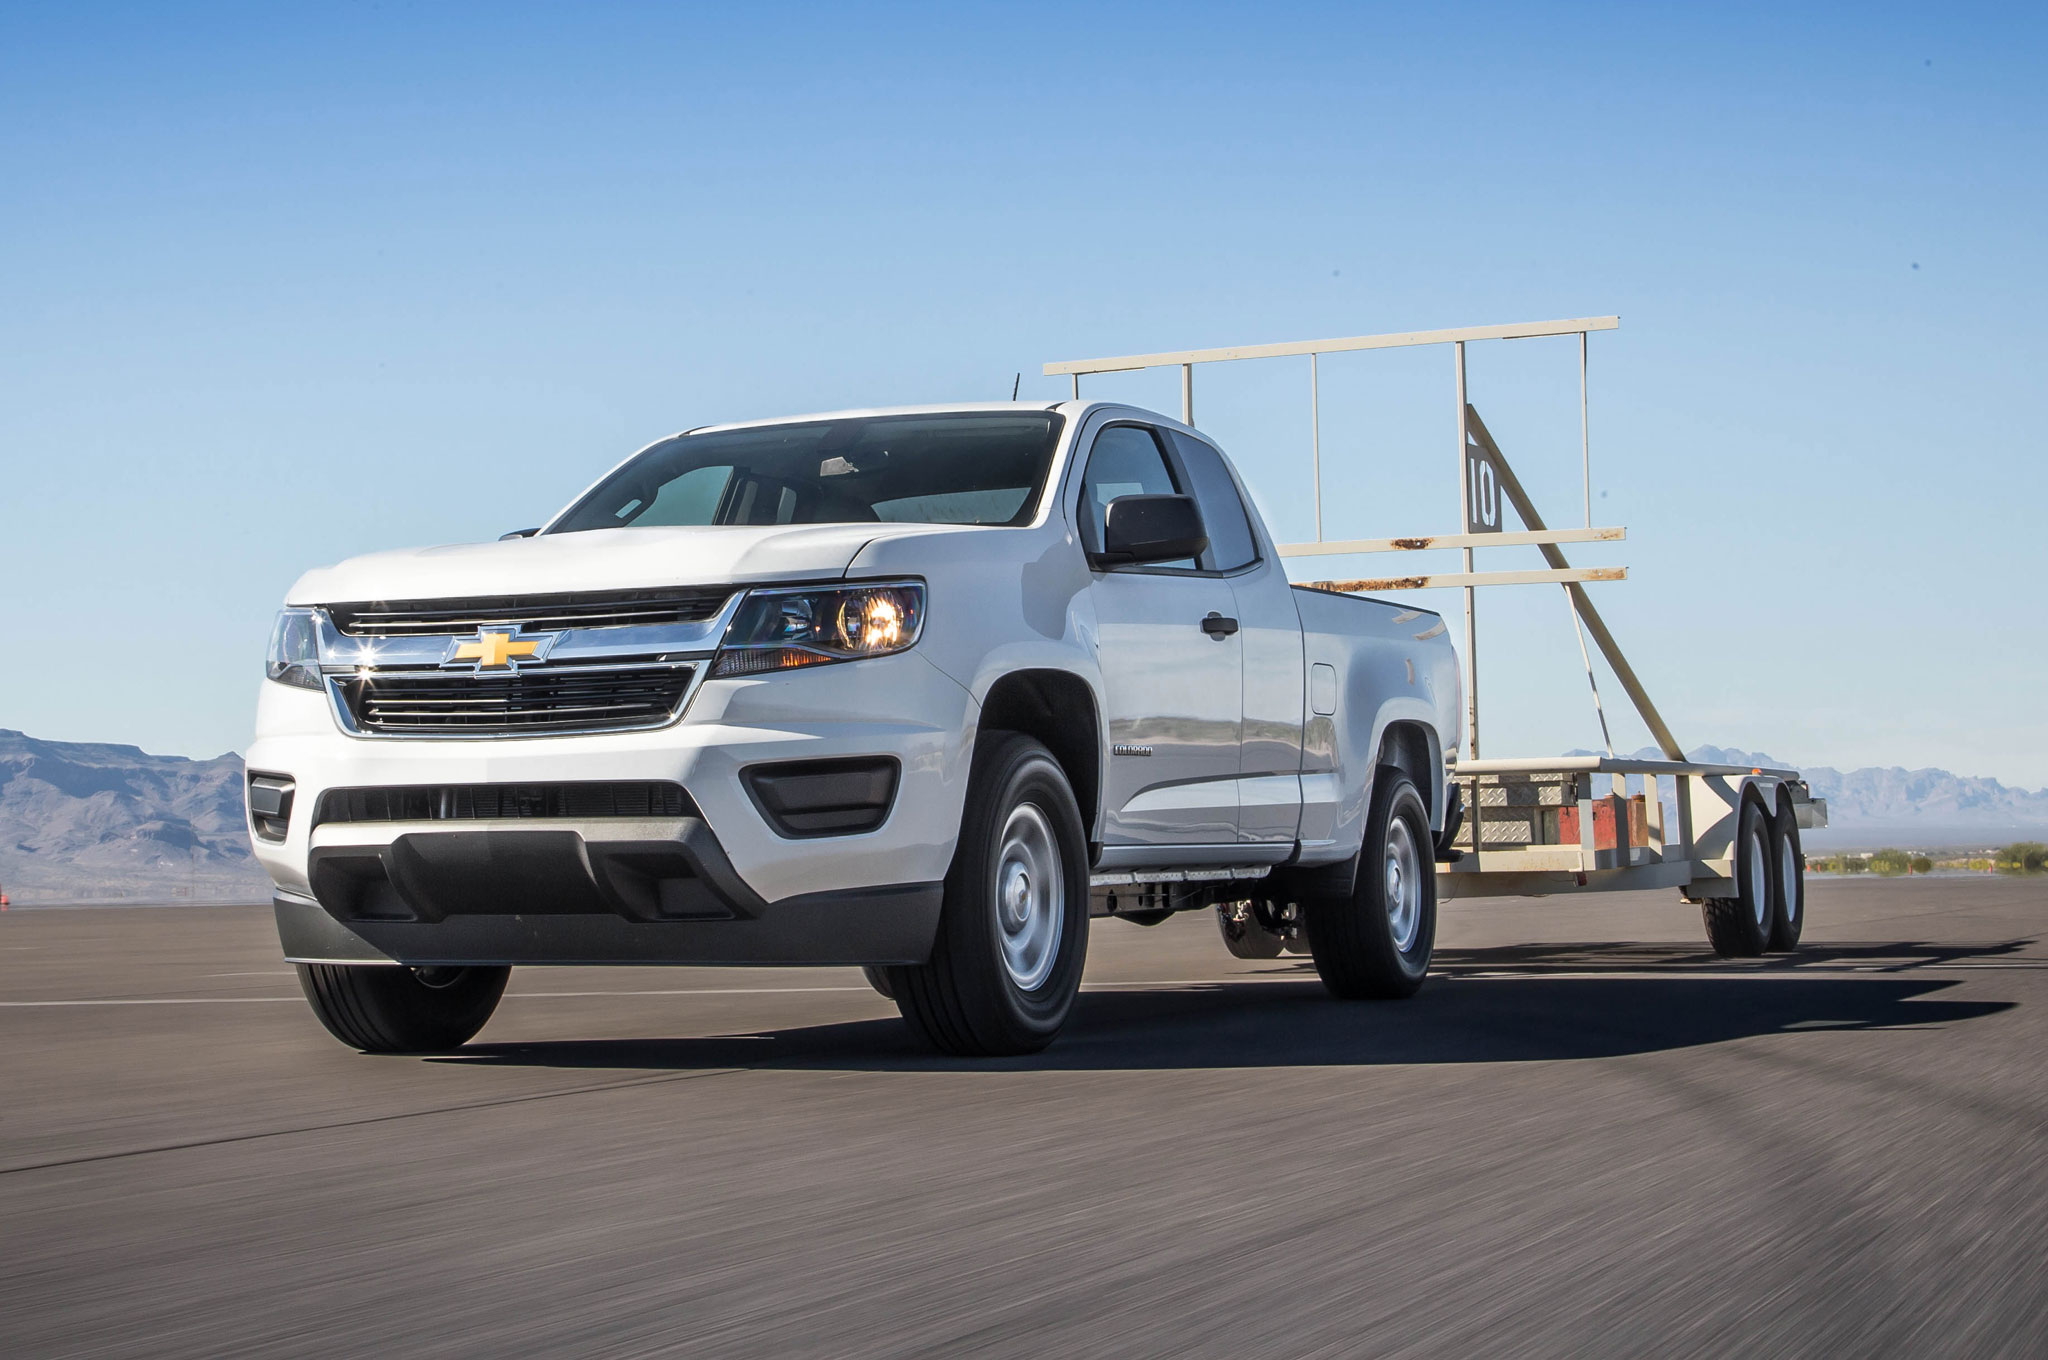 2015 chevrolet colorado wt 25 trailer